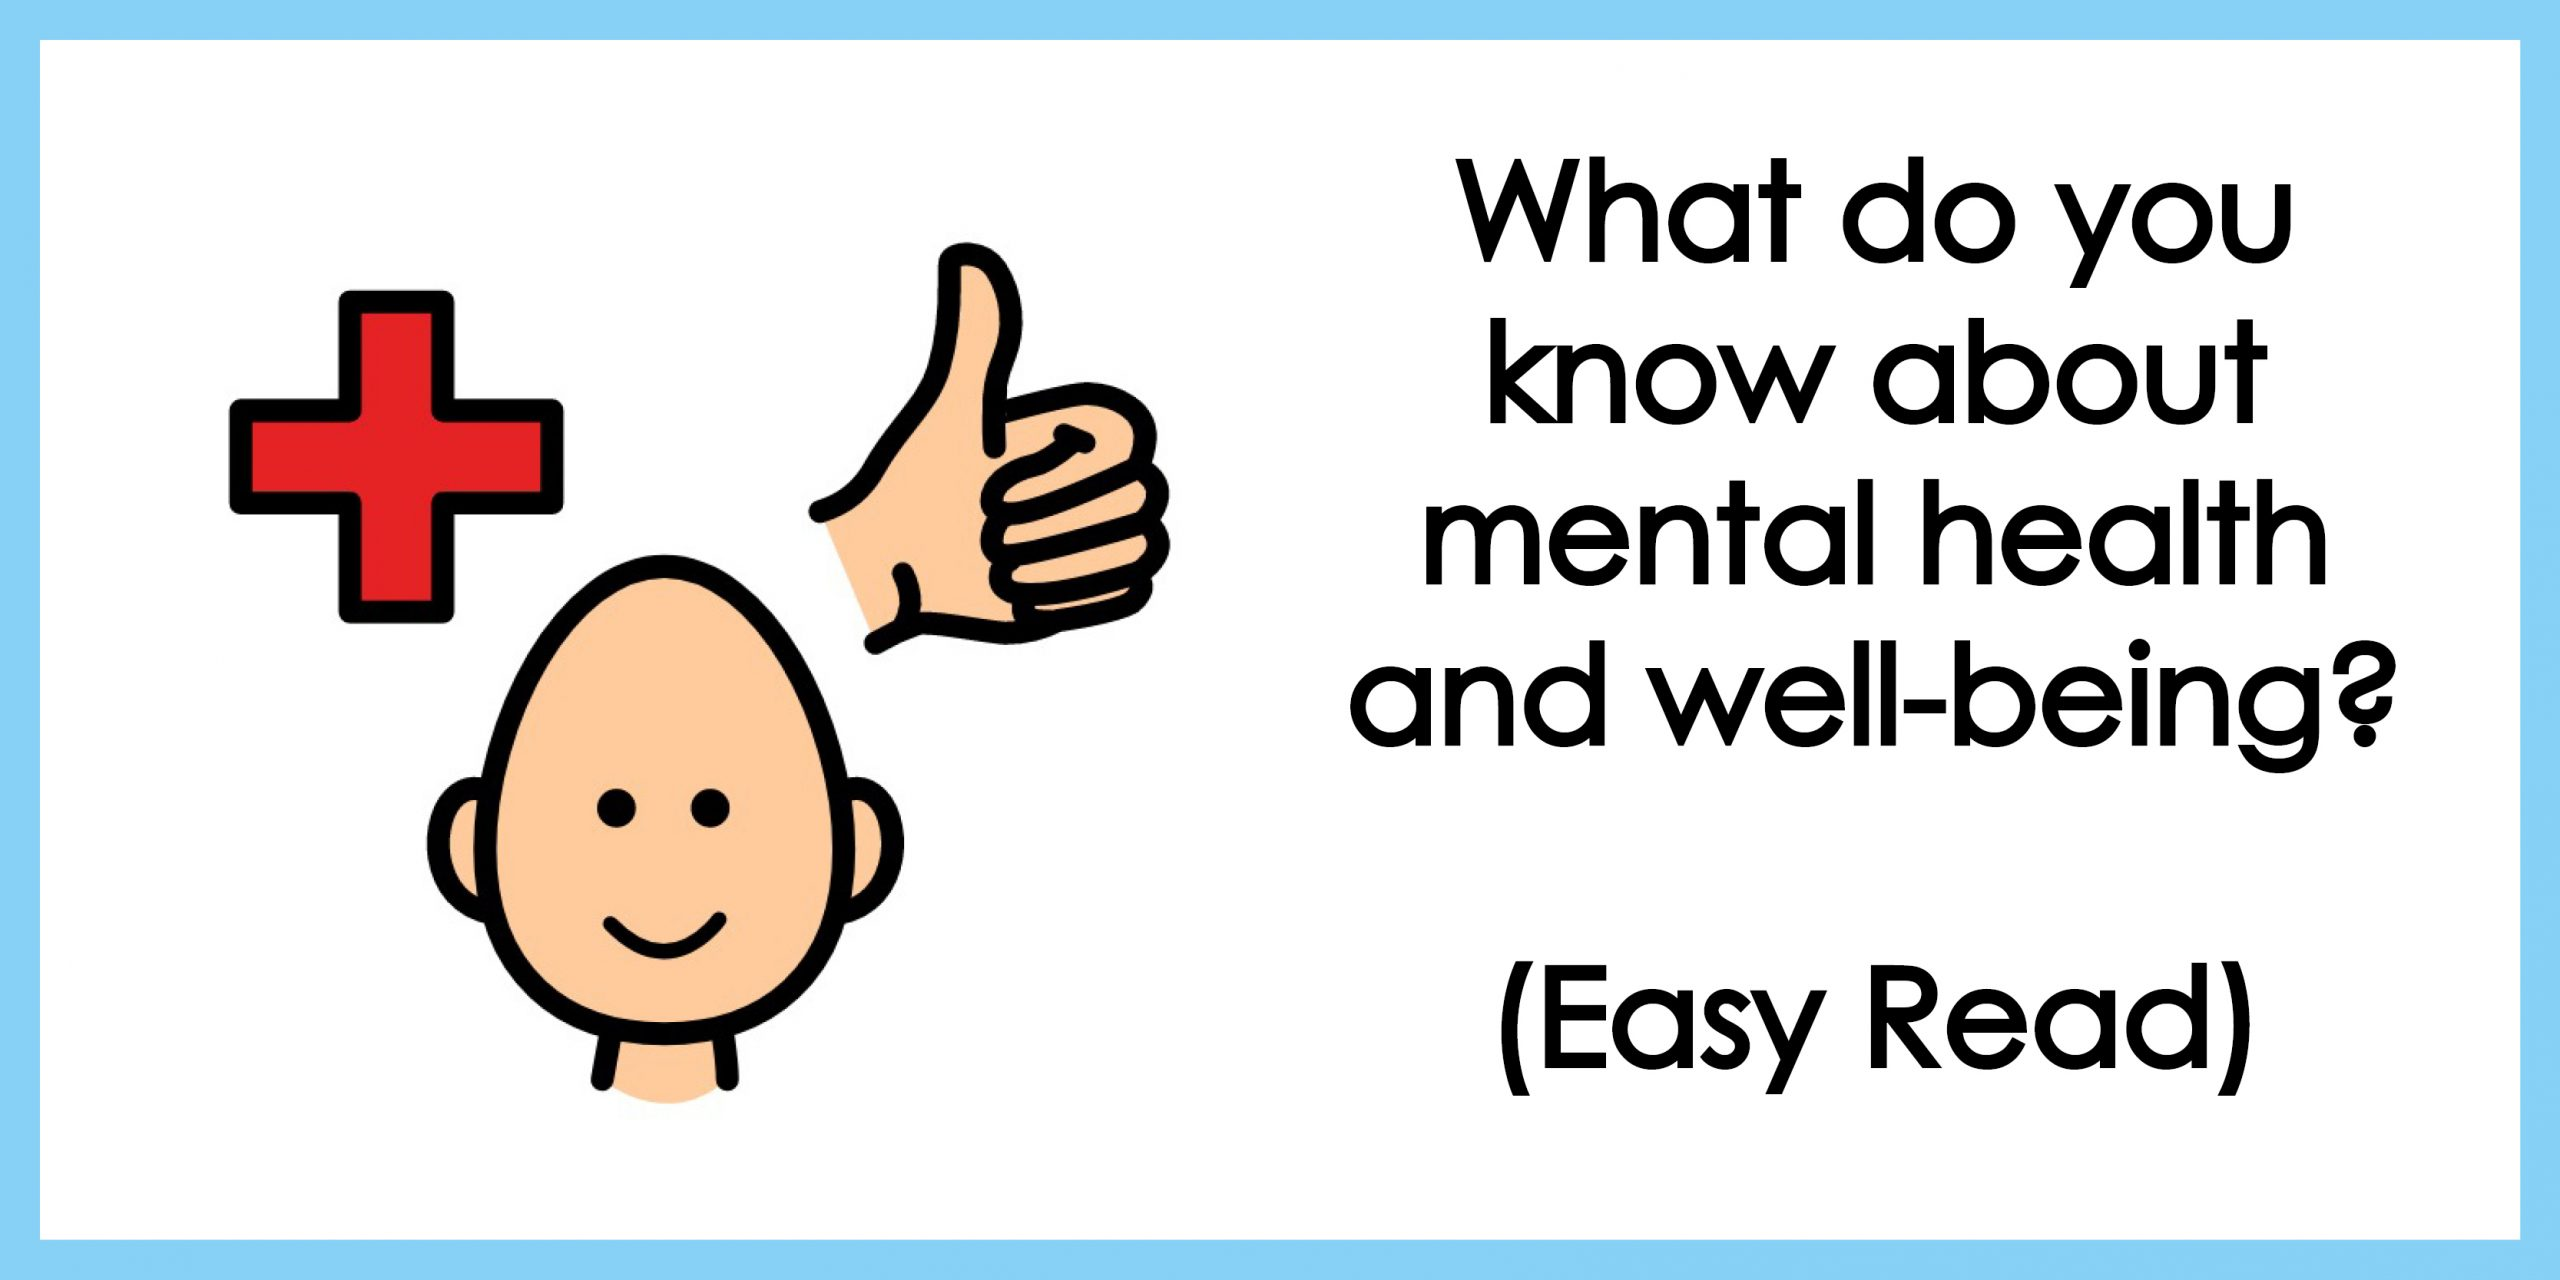 What do you know about mental health and well-being?